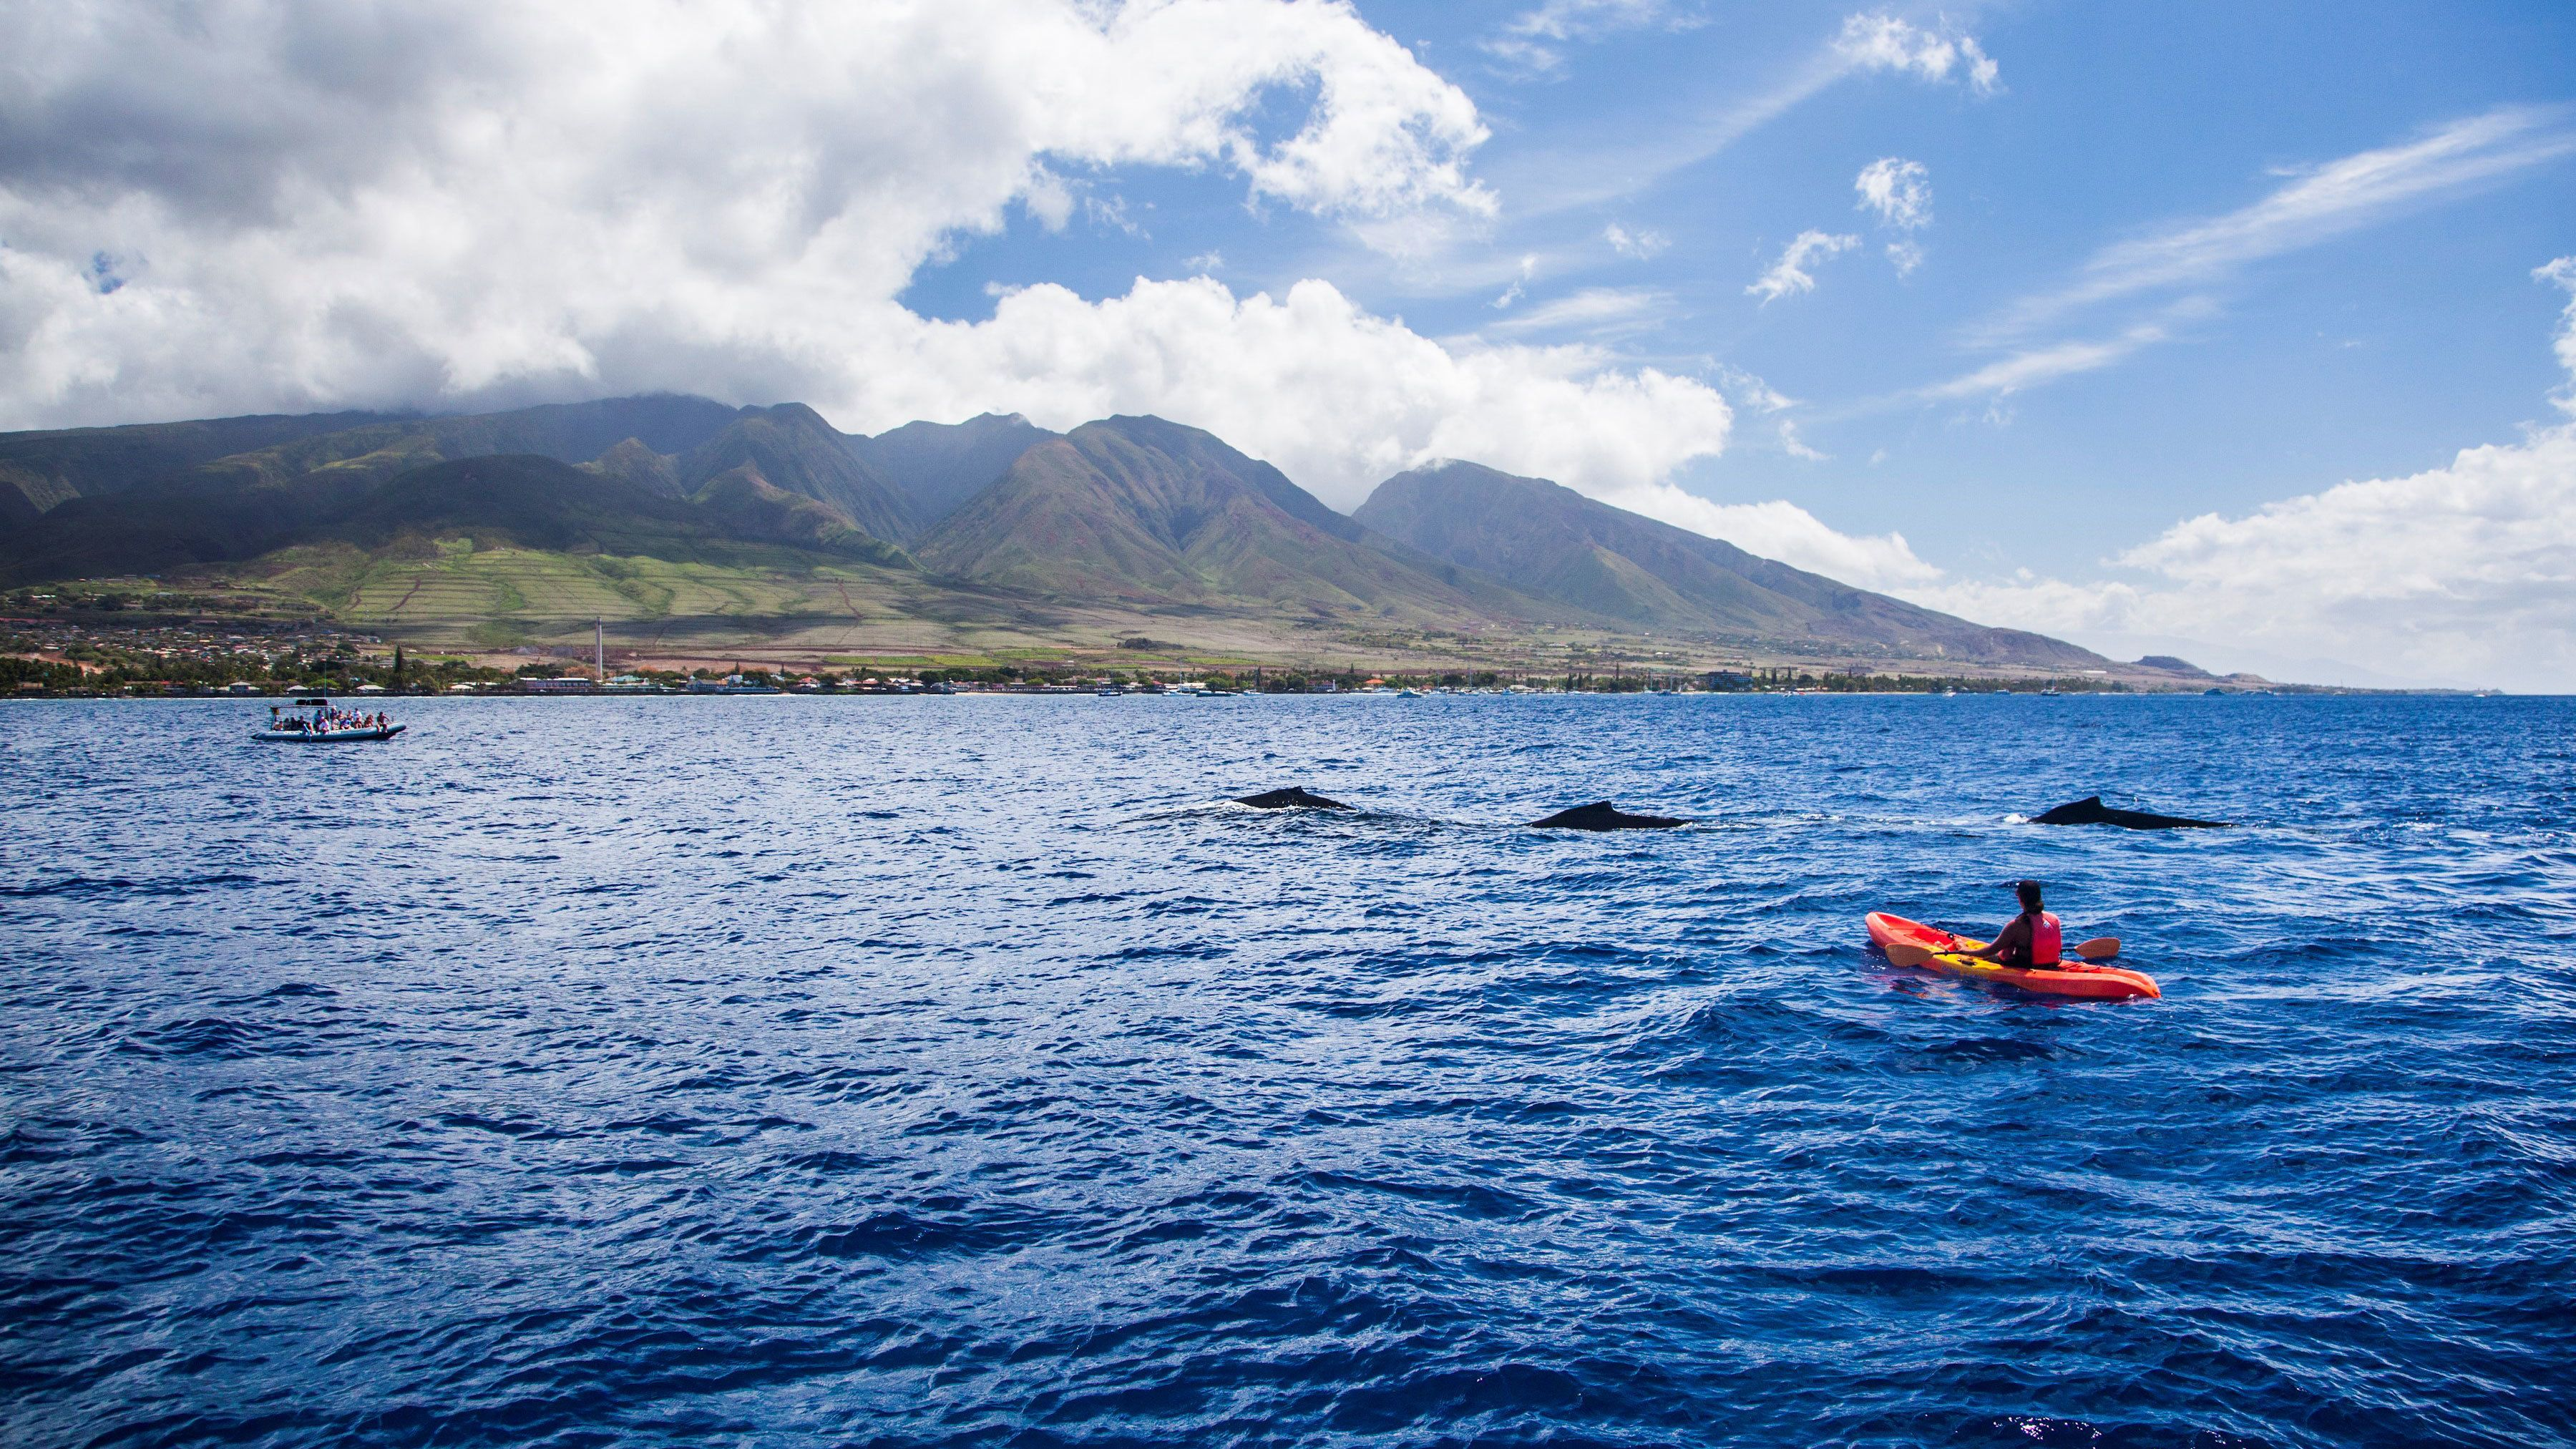 Kayaker looks on at whales swimming nearby in Maui